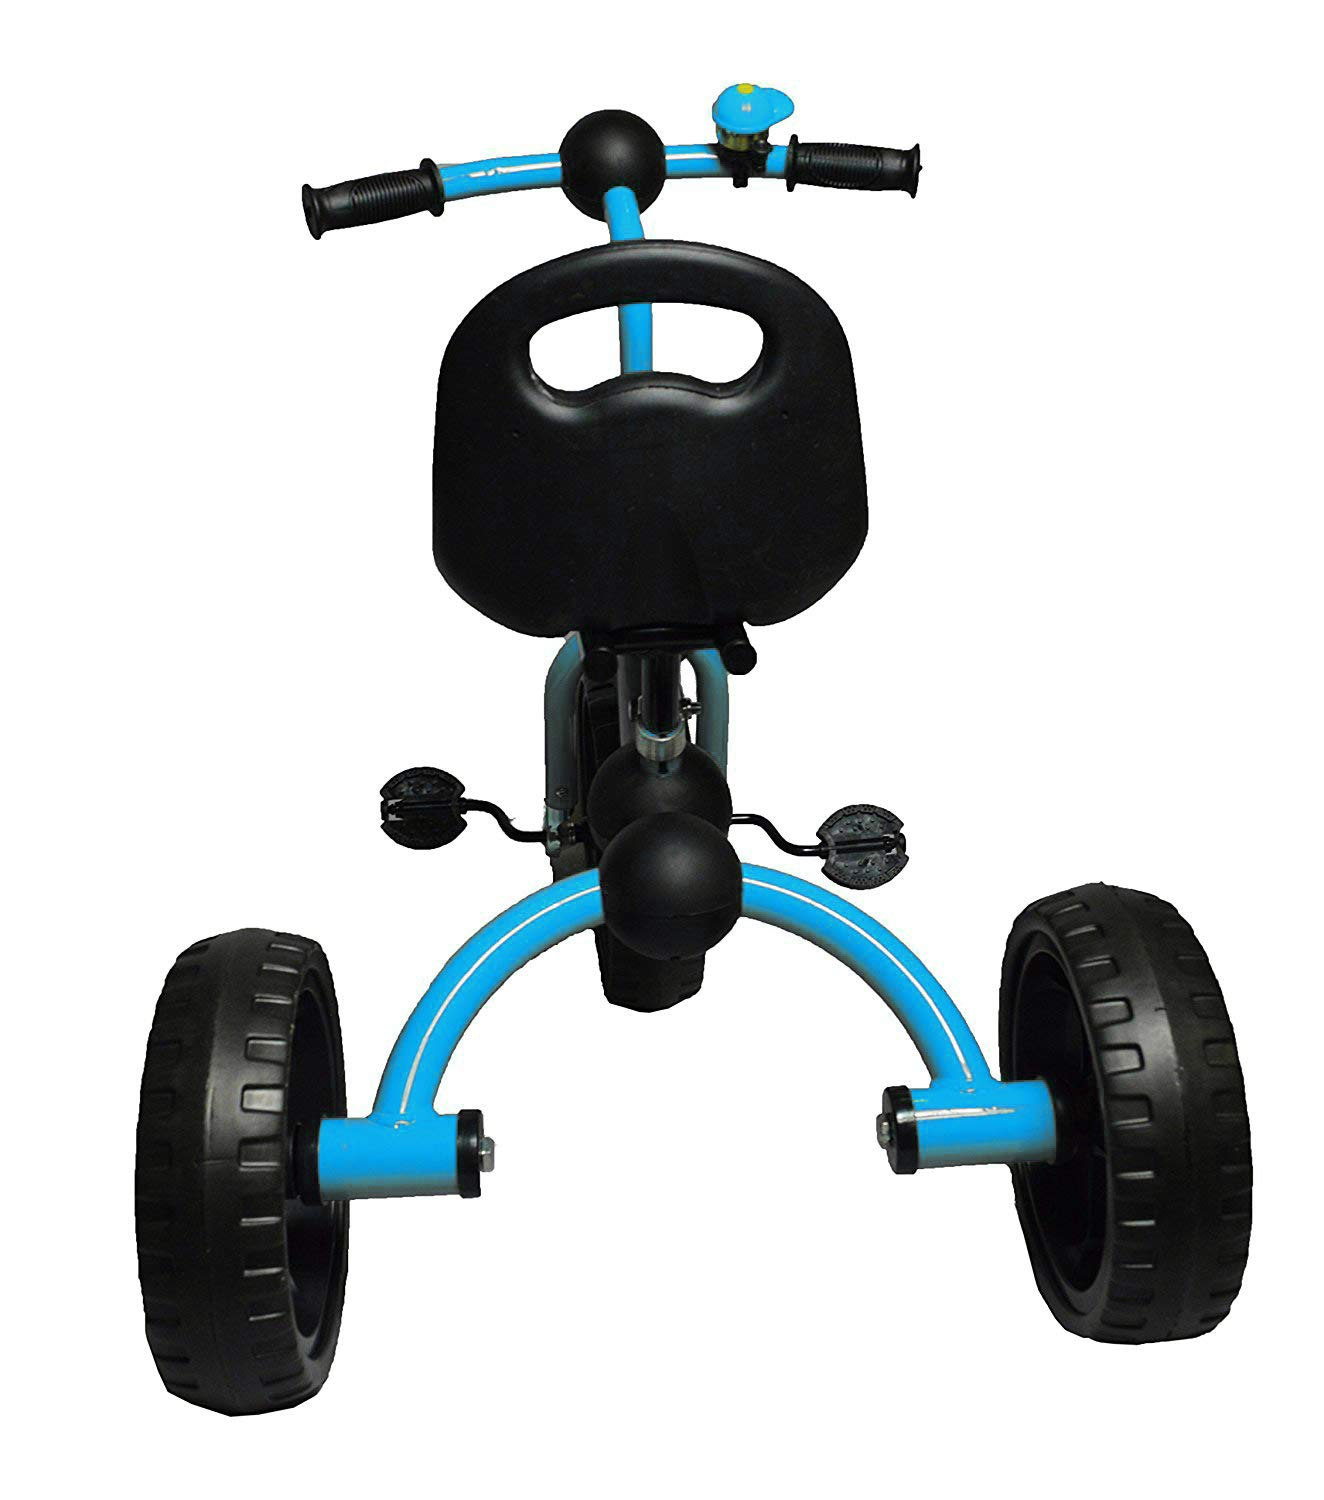 Little Bambino Tricycle for Children Toddler Age 2-6 Years Old Outdoor 3 Wheeler Pedal Ride On Trike with Bell Adjustable Seat Quick Assembly